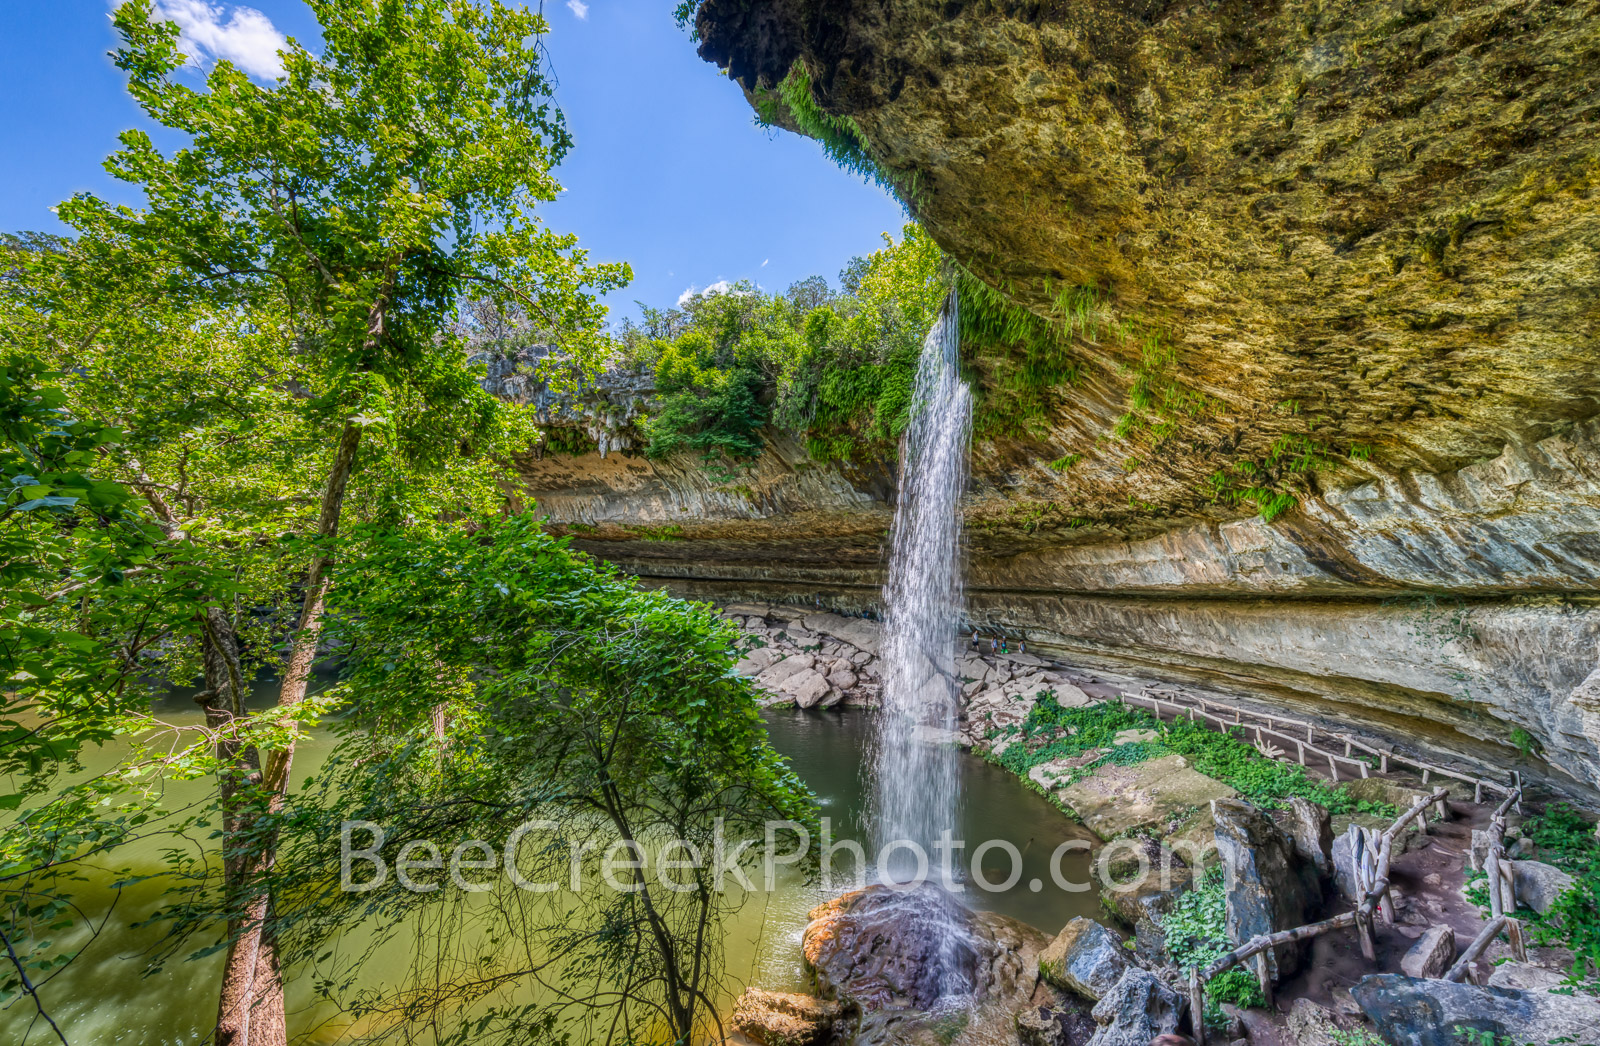 Austin, Hamilton Pool, natural, pool, Texas Hill Country, Travis country park, Hill Country, hamilton pool preserve, images from hamilton pool, natural pool, rockscape, pool, natural, waterfall, cave,, photo